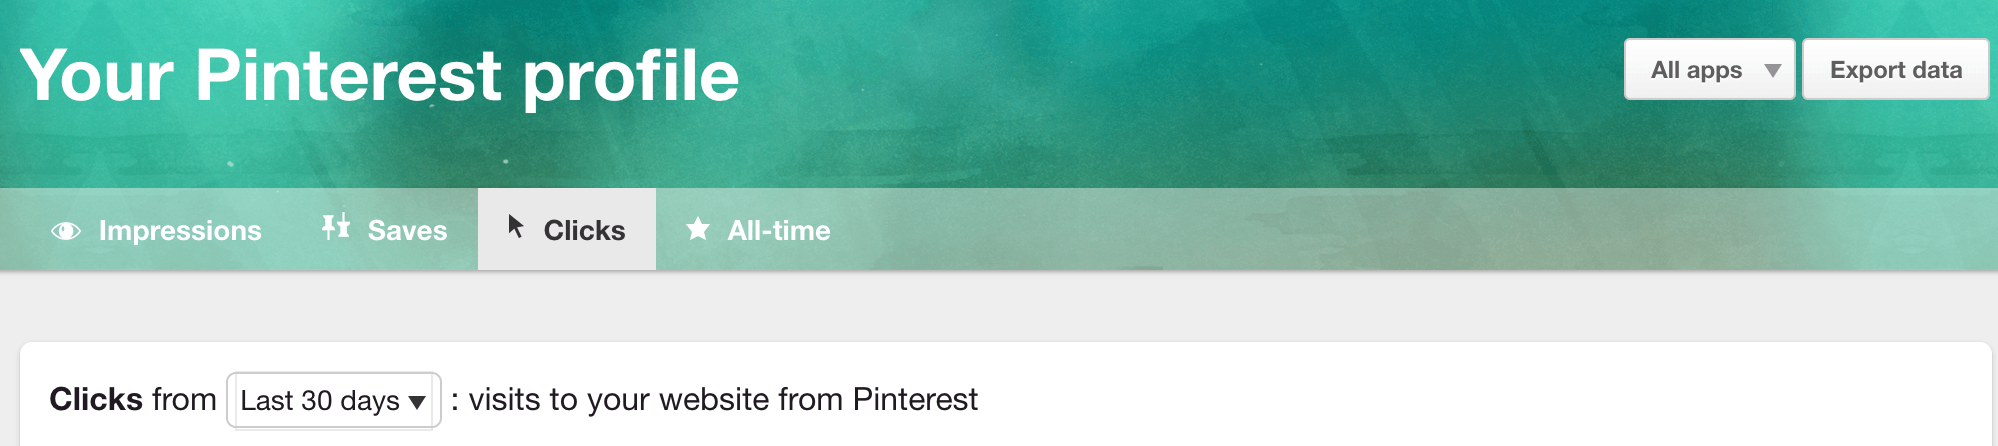 Pinterest for Business Marketing Expert